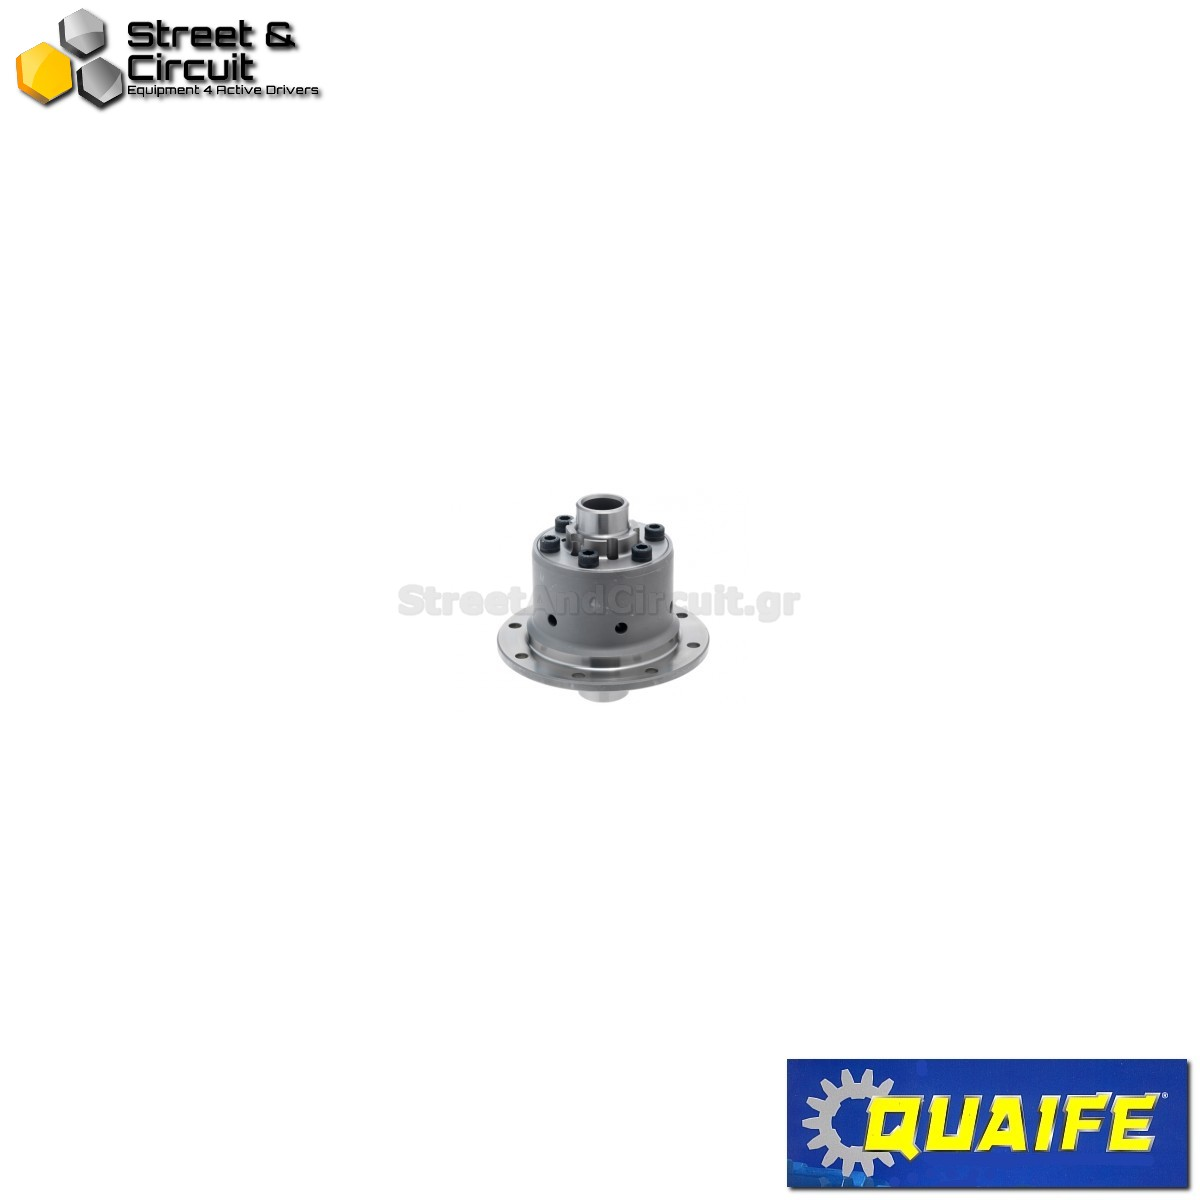 Ford Explorer 4WD front Quaife ATB Μπλοκέ Διαφορικό/Limited Slip Diff